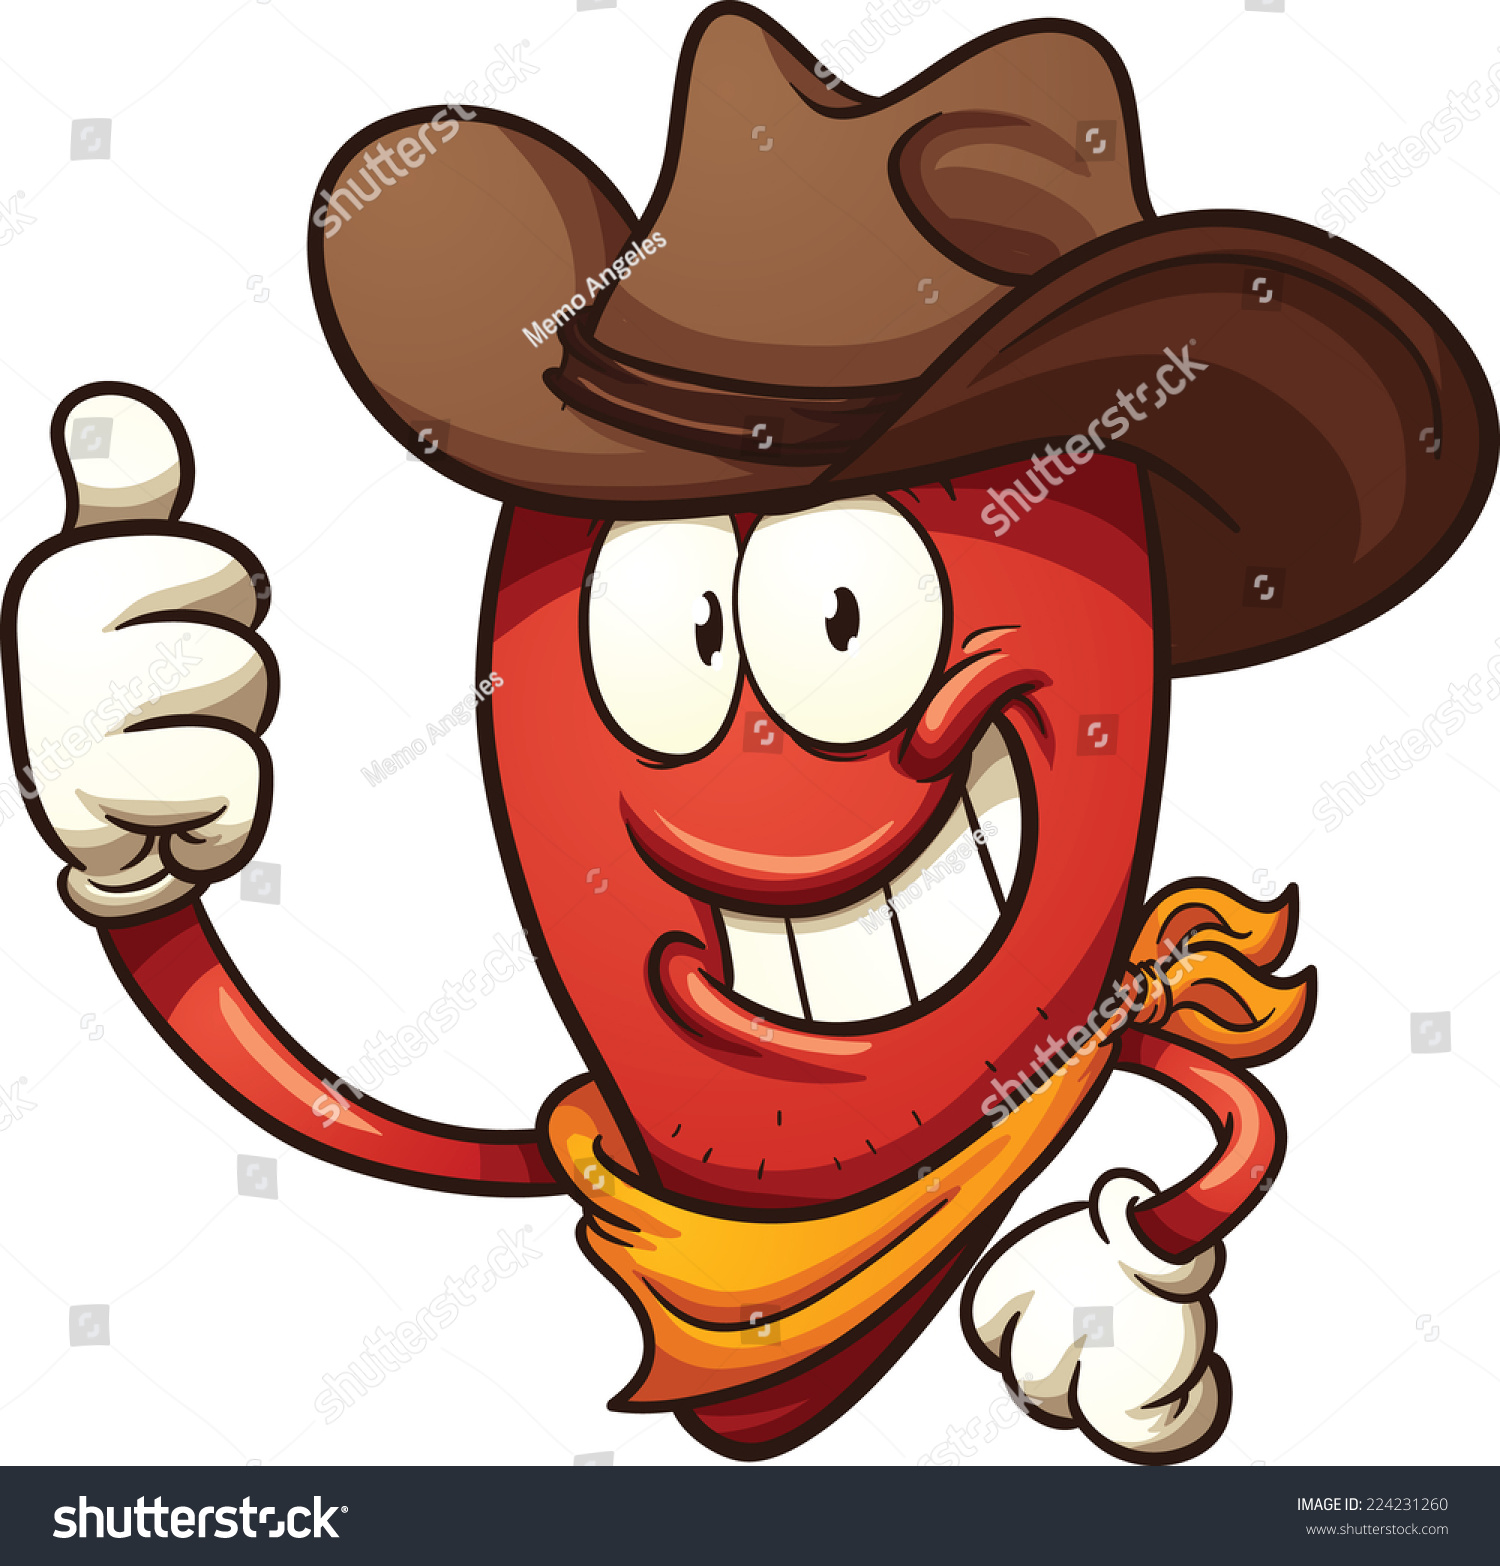 hight resolution of cowboy chili pepper vector clip art illustration with simple gradients all in a single layer